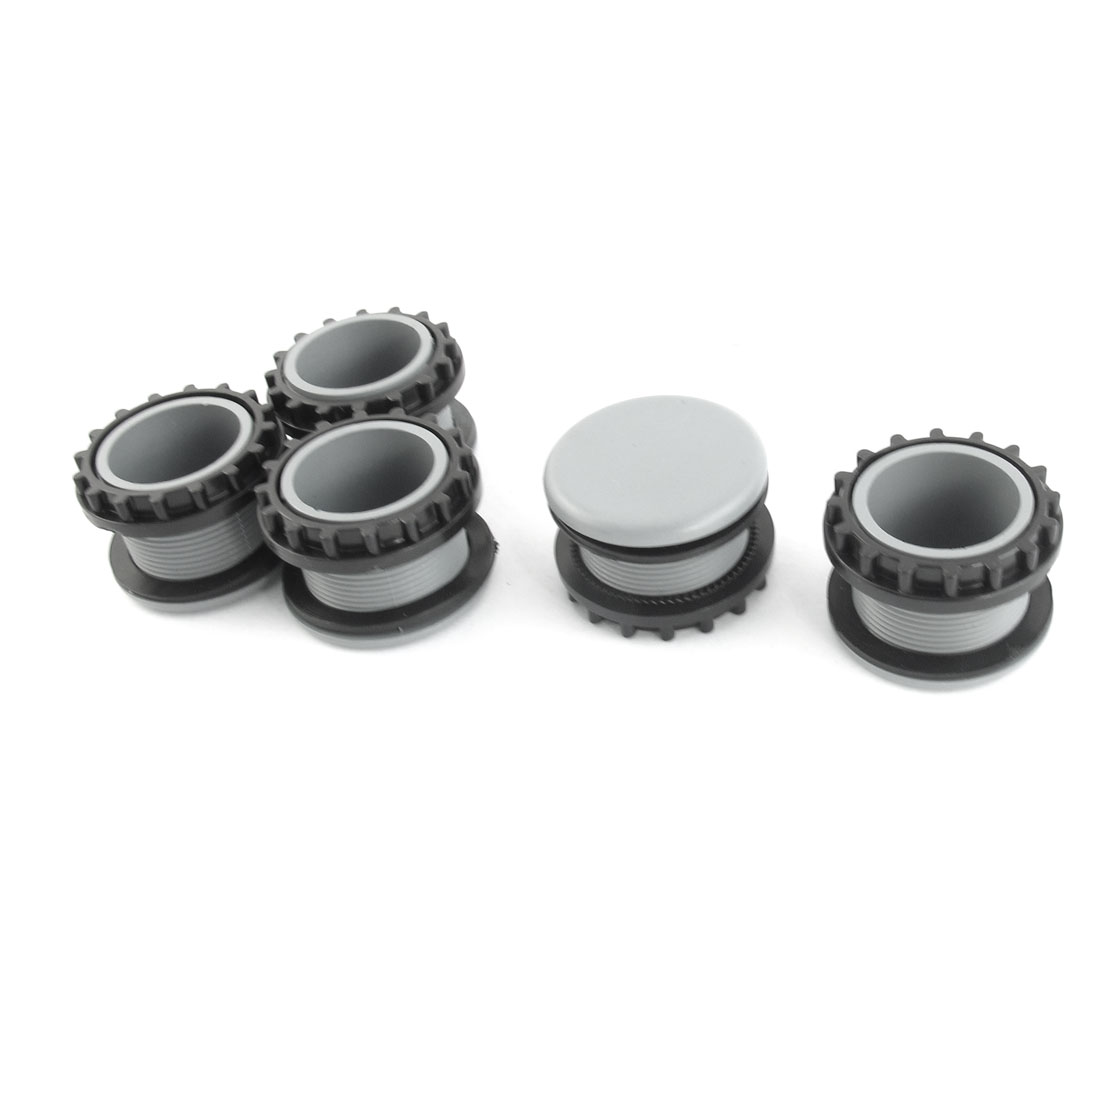 5Pcs 22mm Dia Thread Gray Plastic Mount Hole Panel Plug Cap Cover